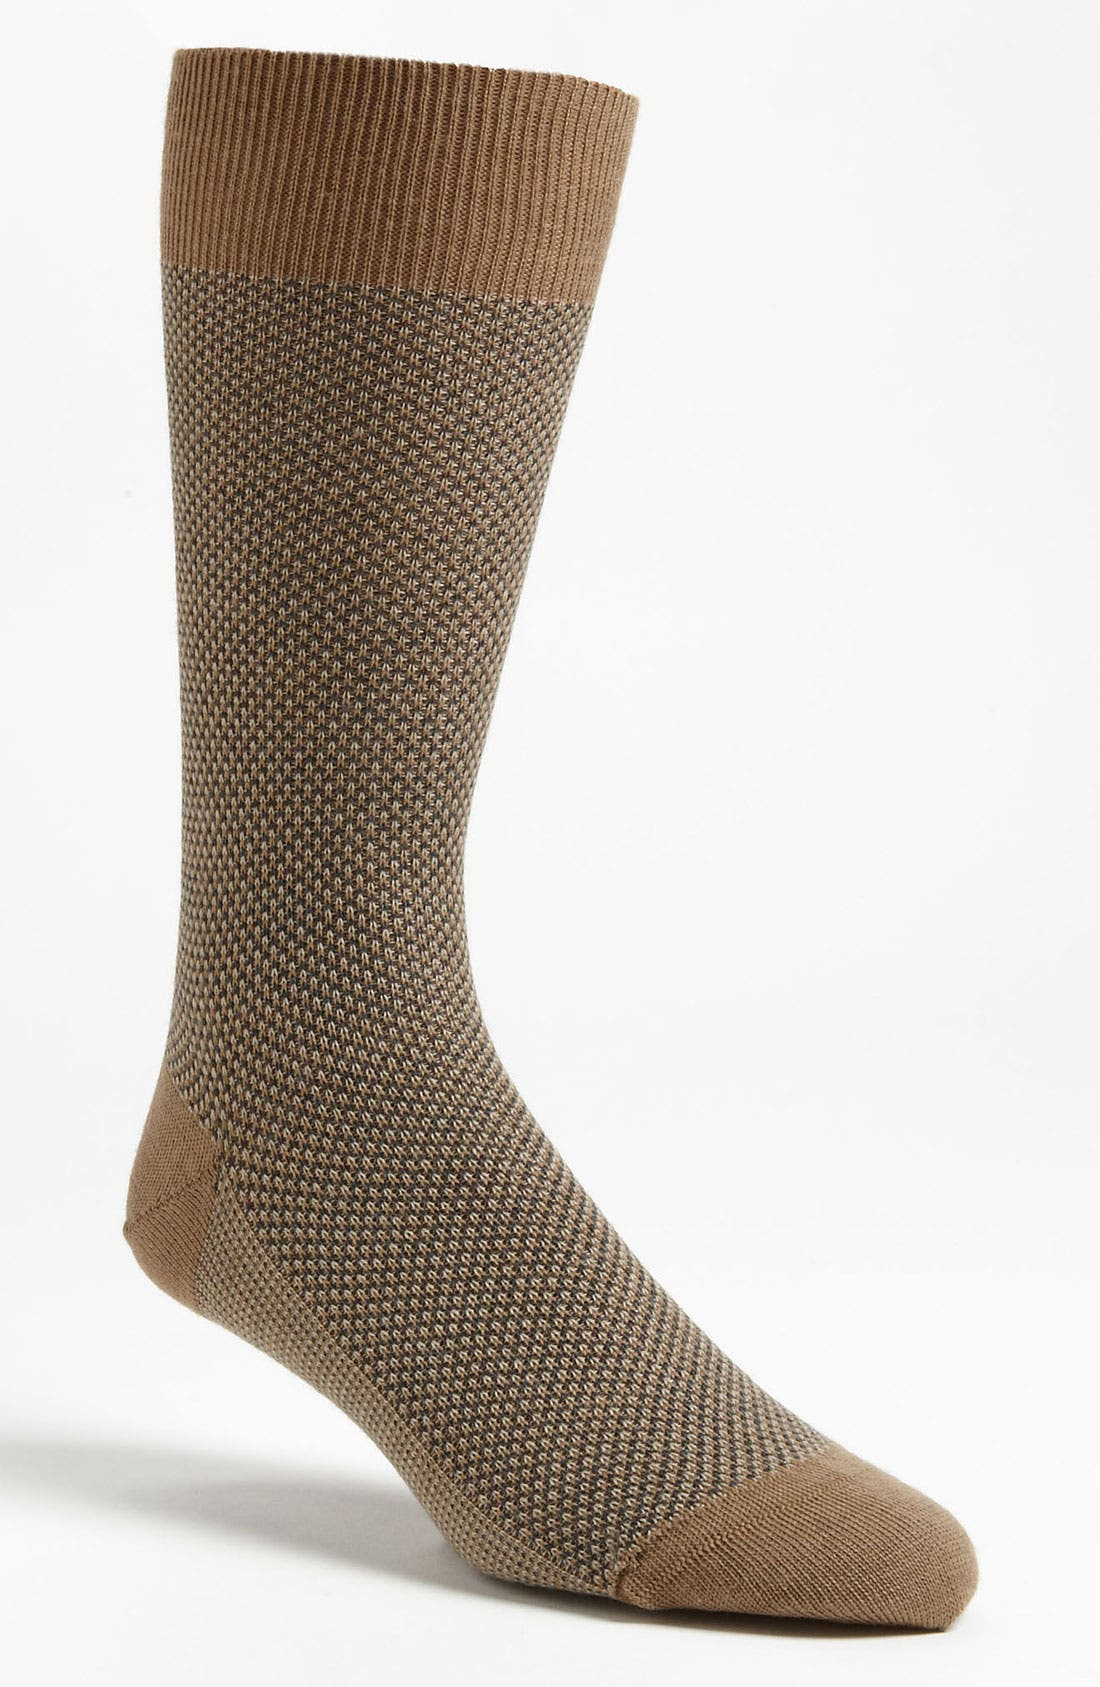 Main Image - Pantherella 'Vintage Collection' Birdseye Socks